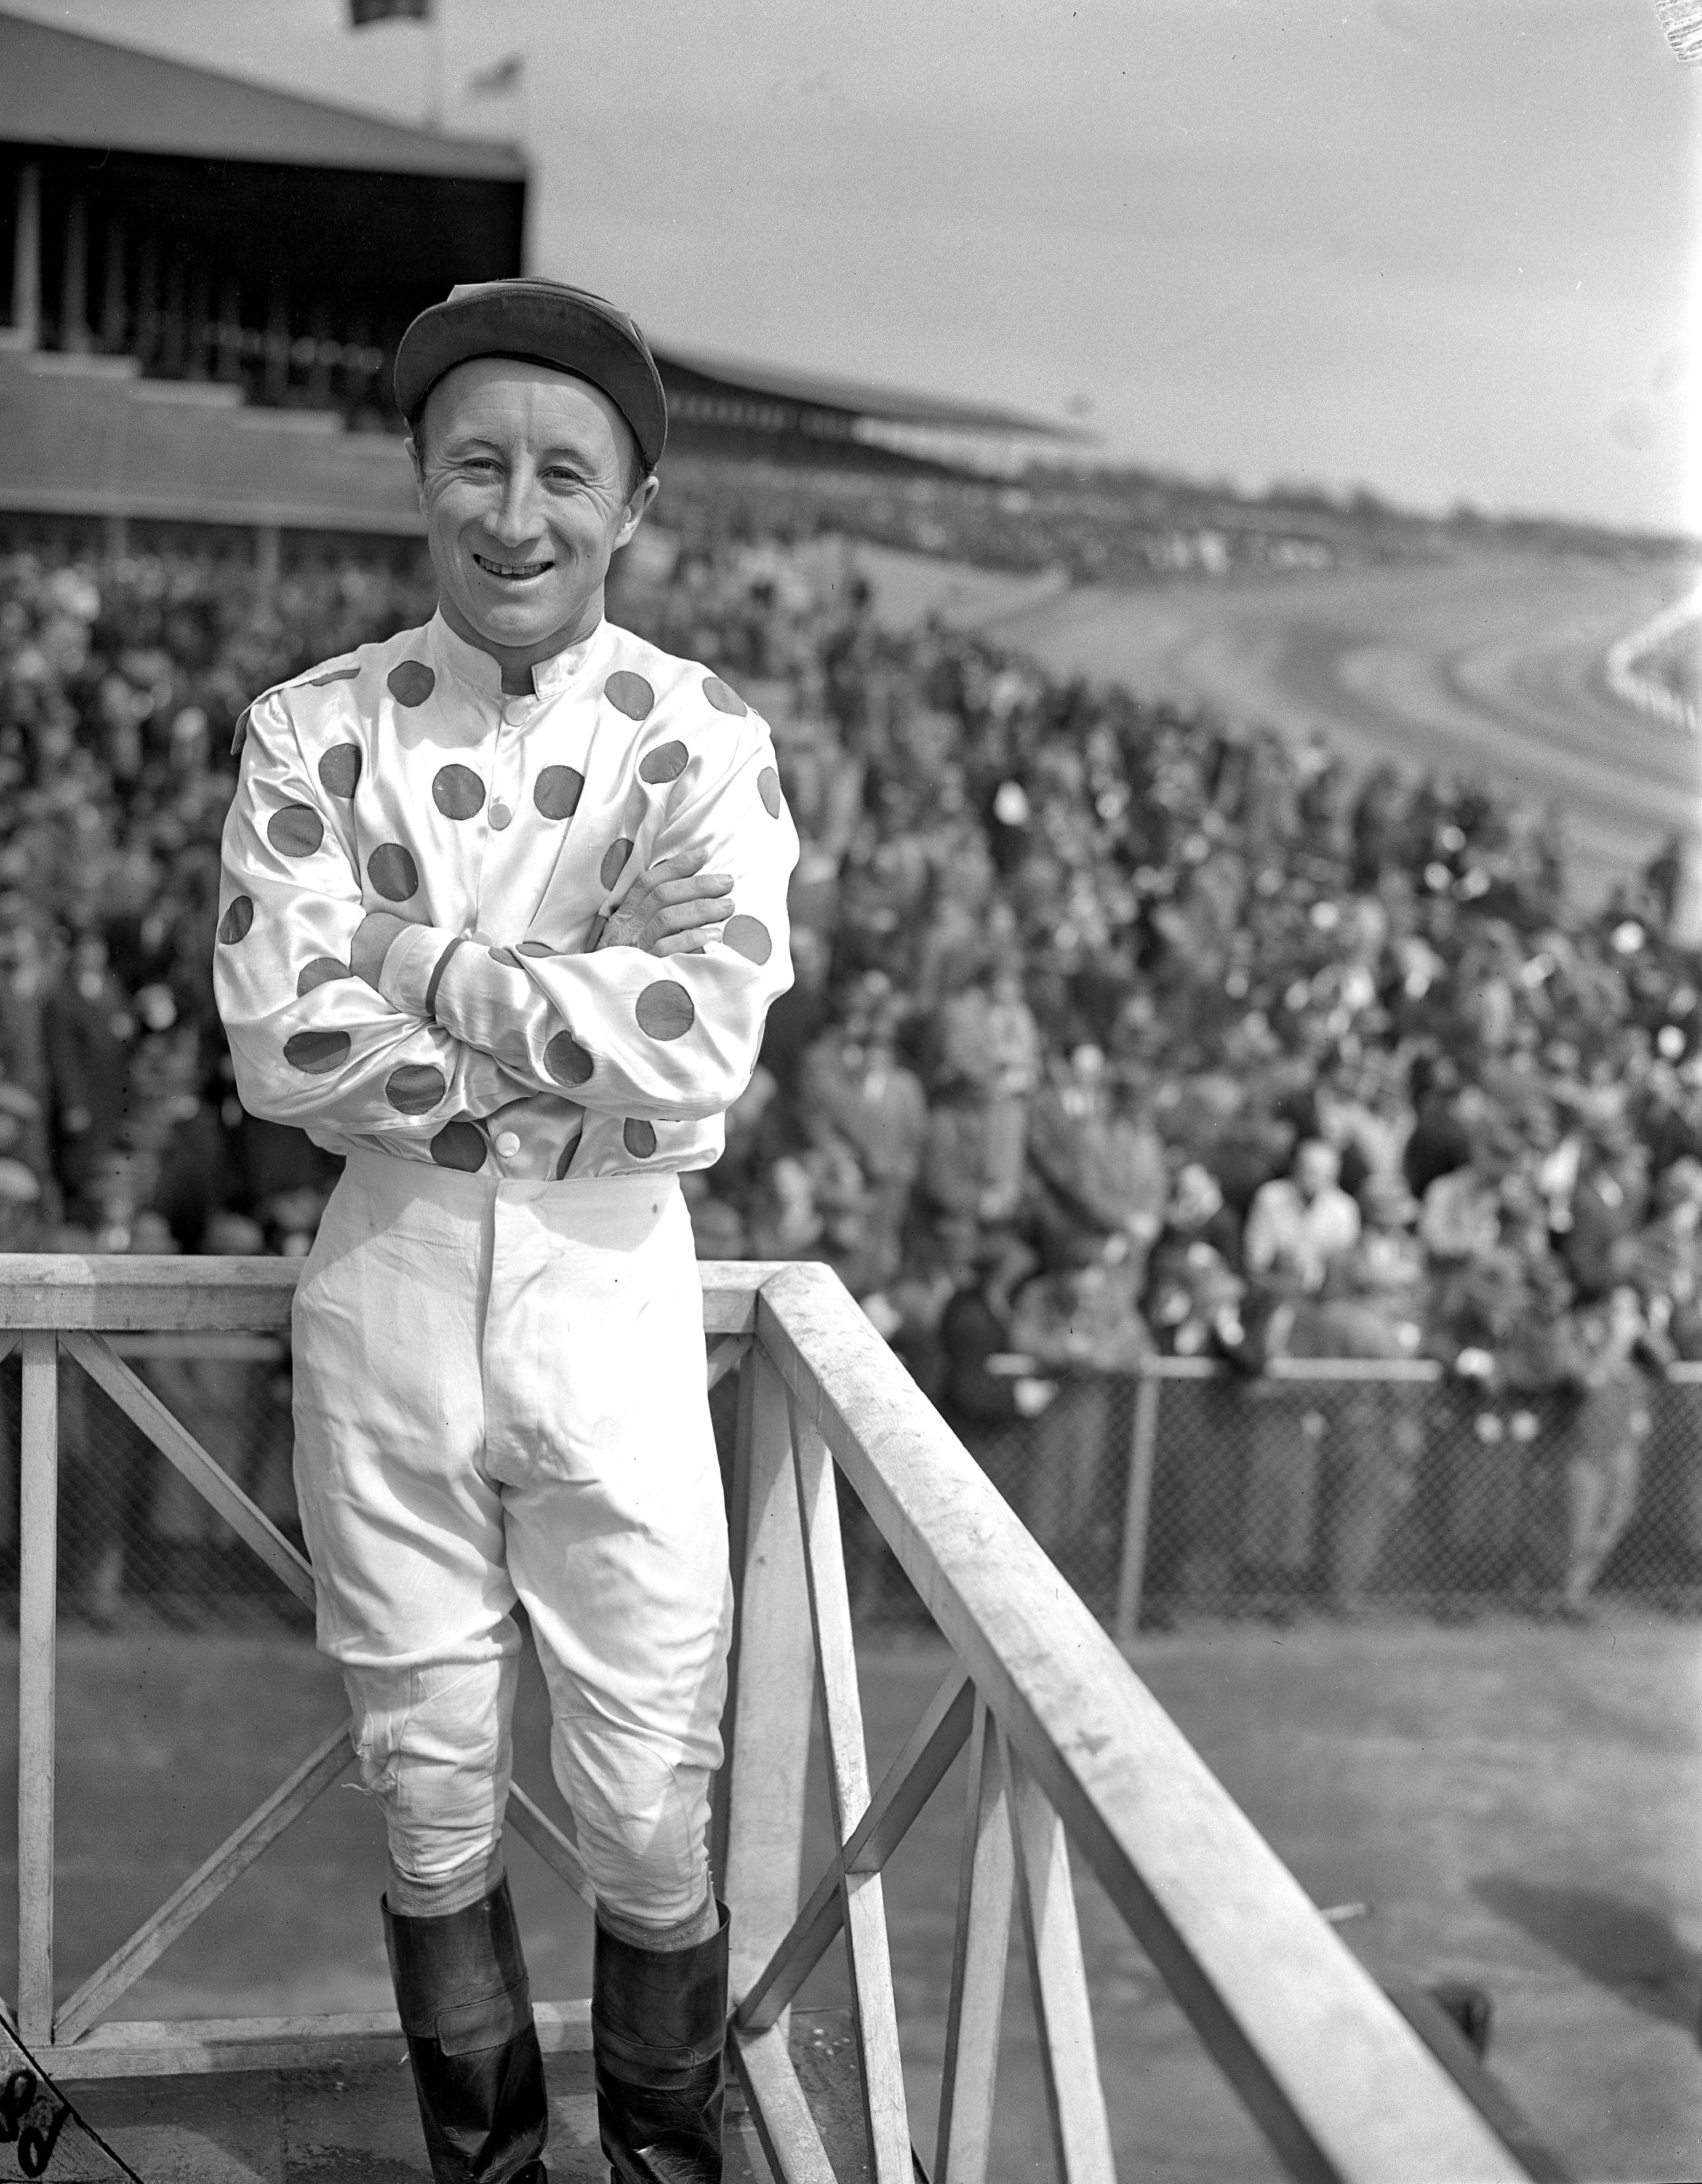 James Stout at Jamaica Racetrack, 1946 (Keeneland Library Morgan Collection)